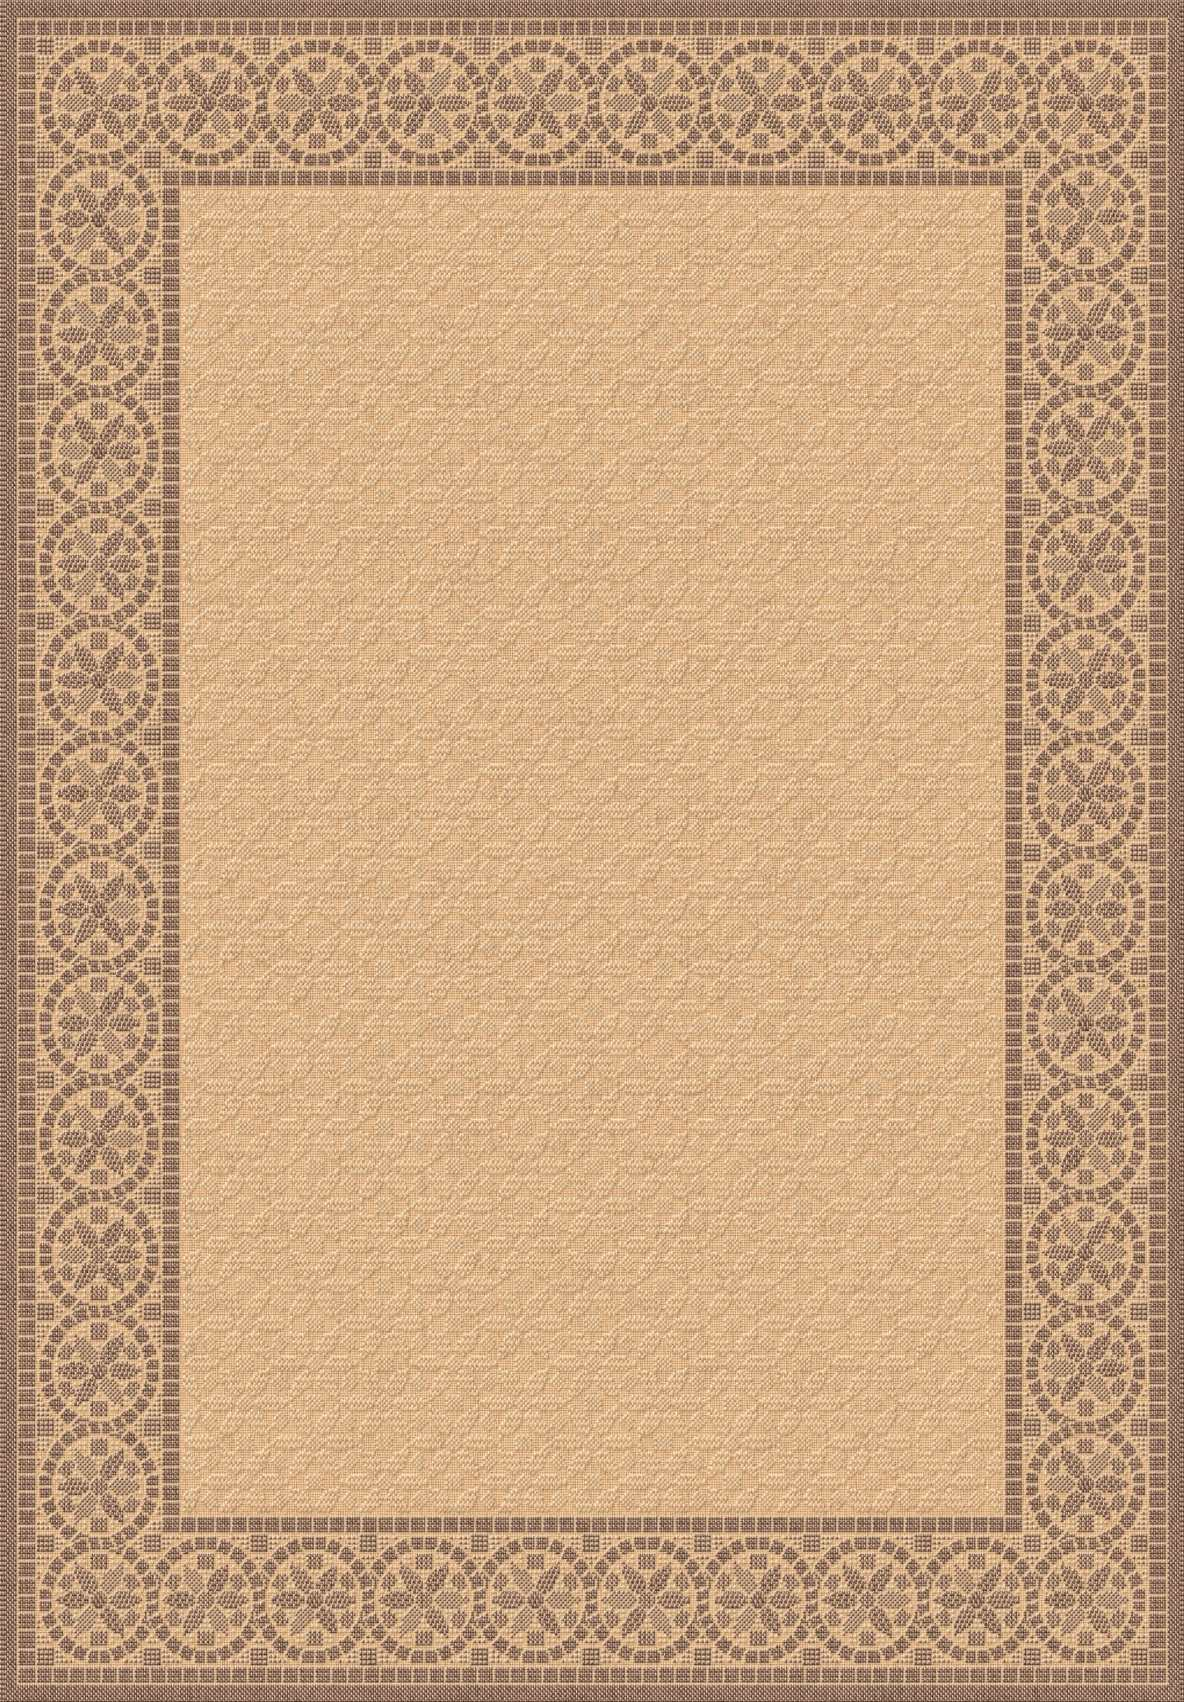 Dynamic Rugs Piazza Medallion/damask Brown 2745 Area Rug